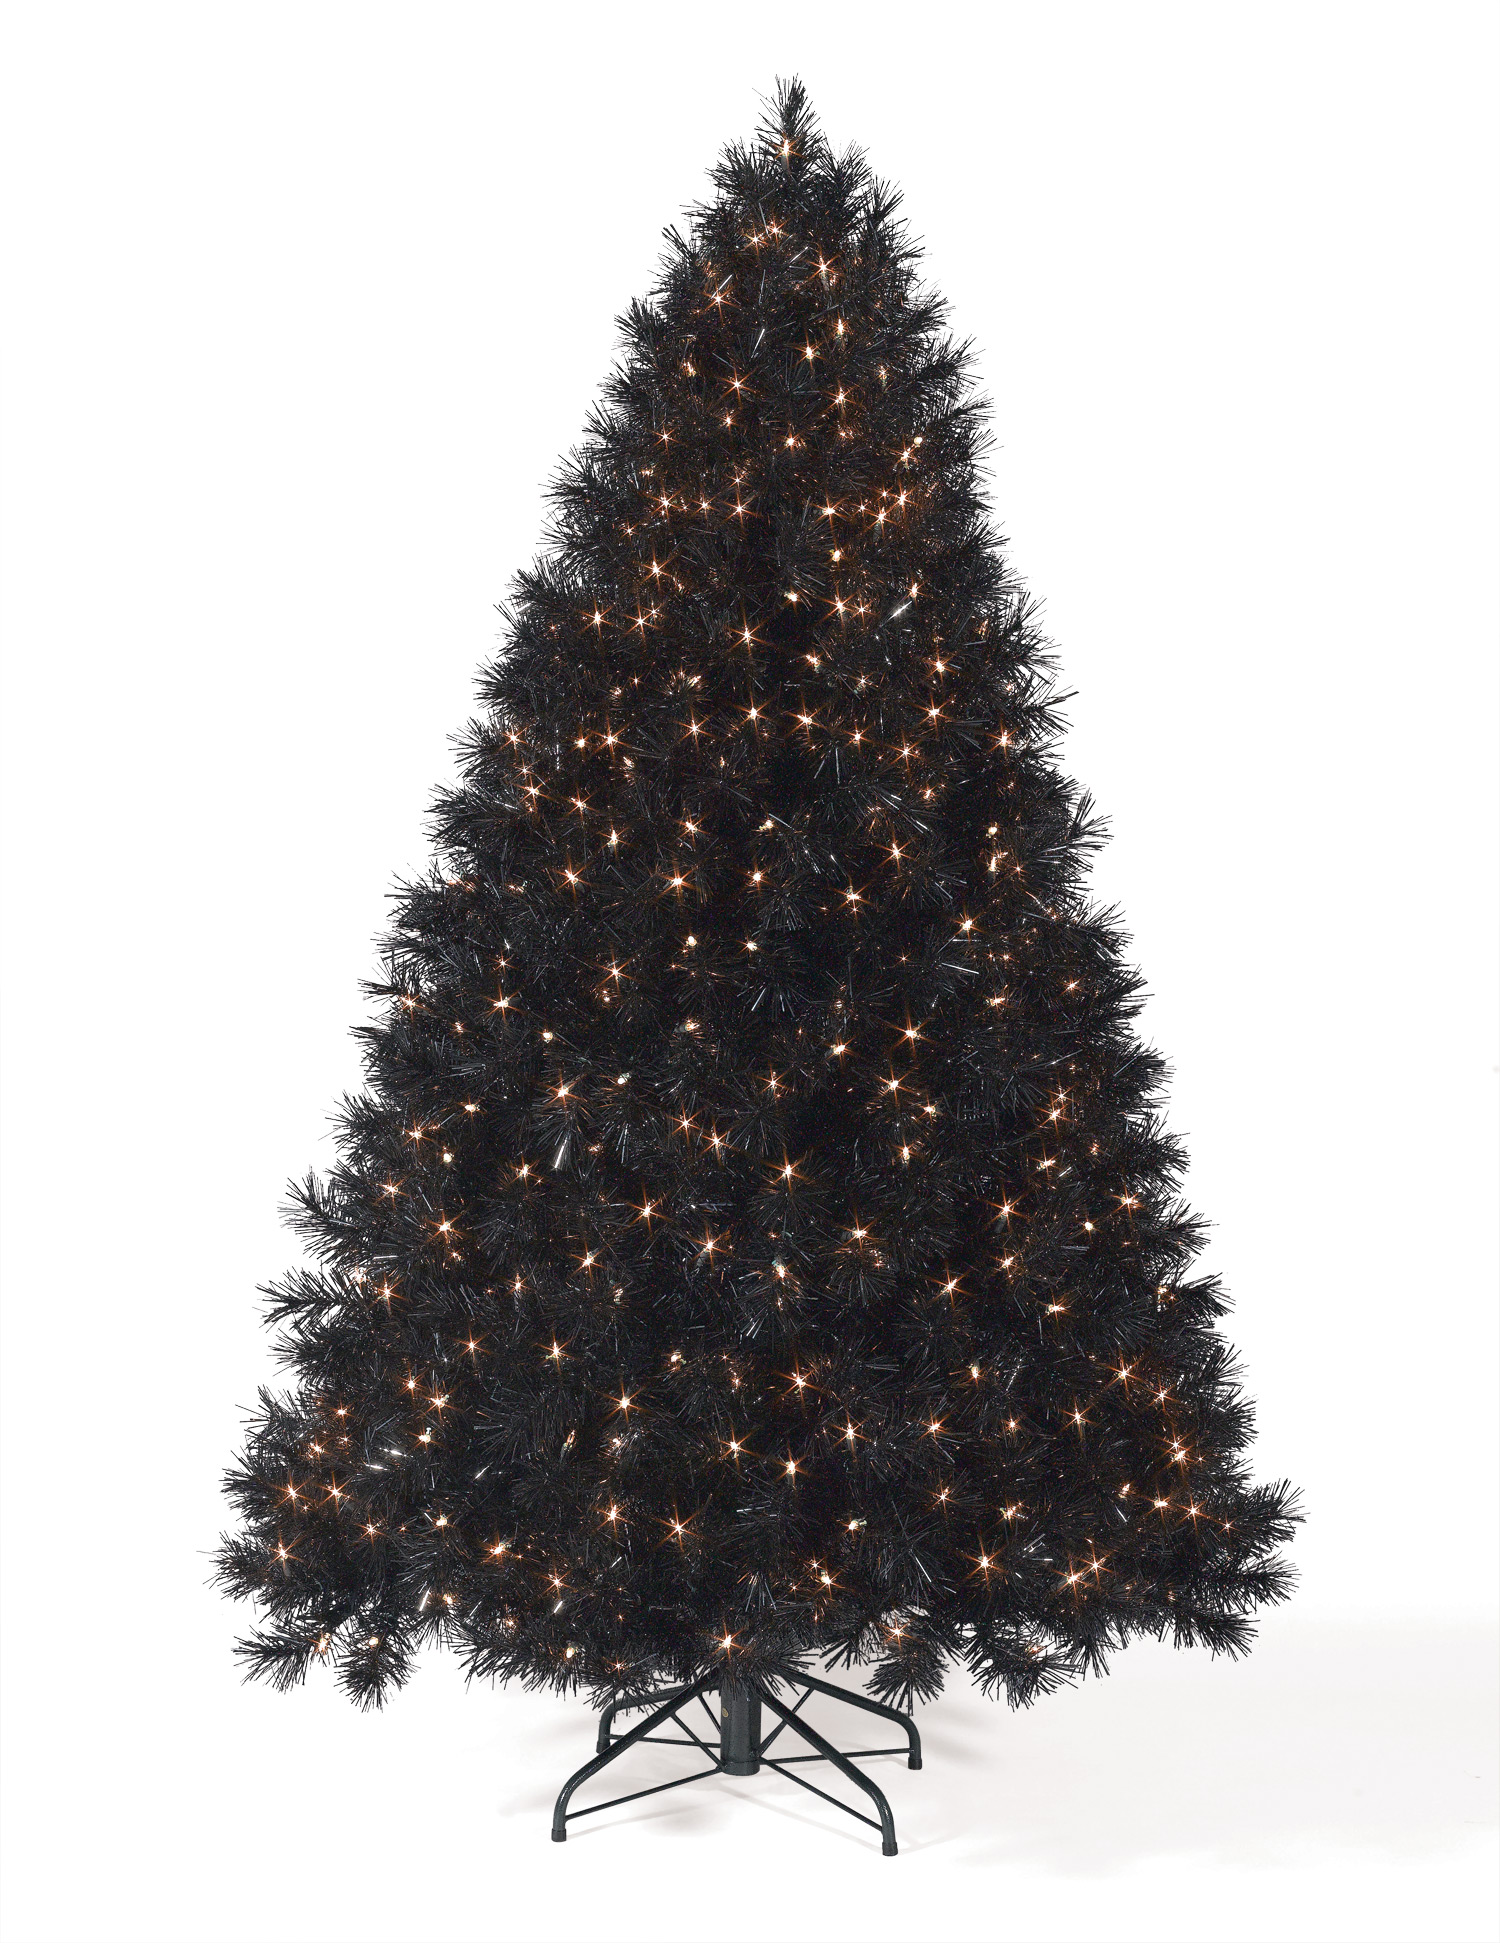 9 ft Classy Black Clear Lit Christmas Tree | Christmas Tree Market